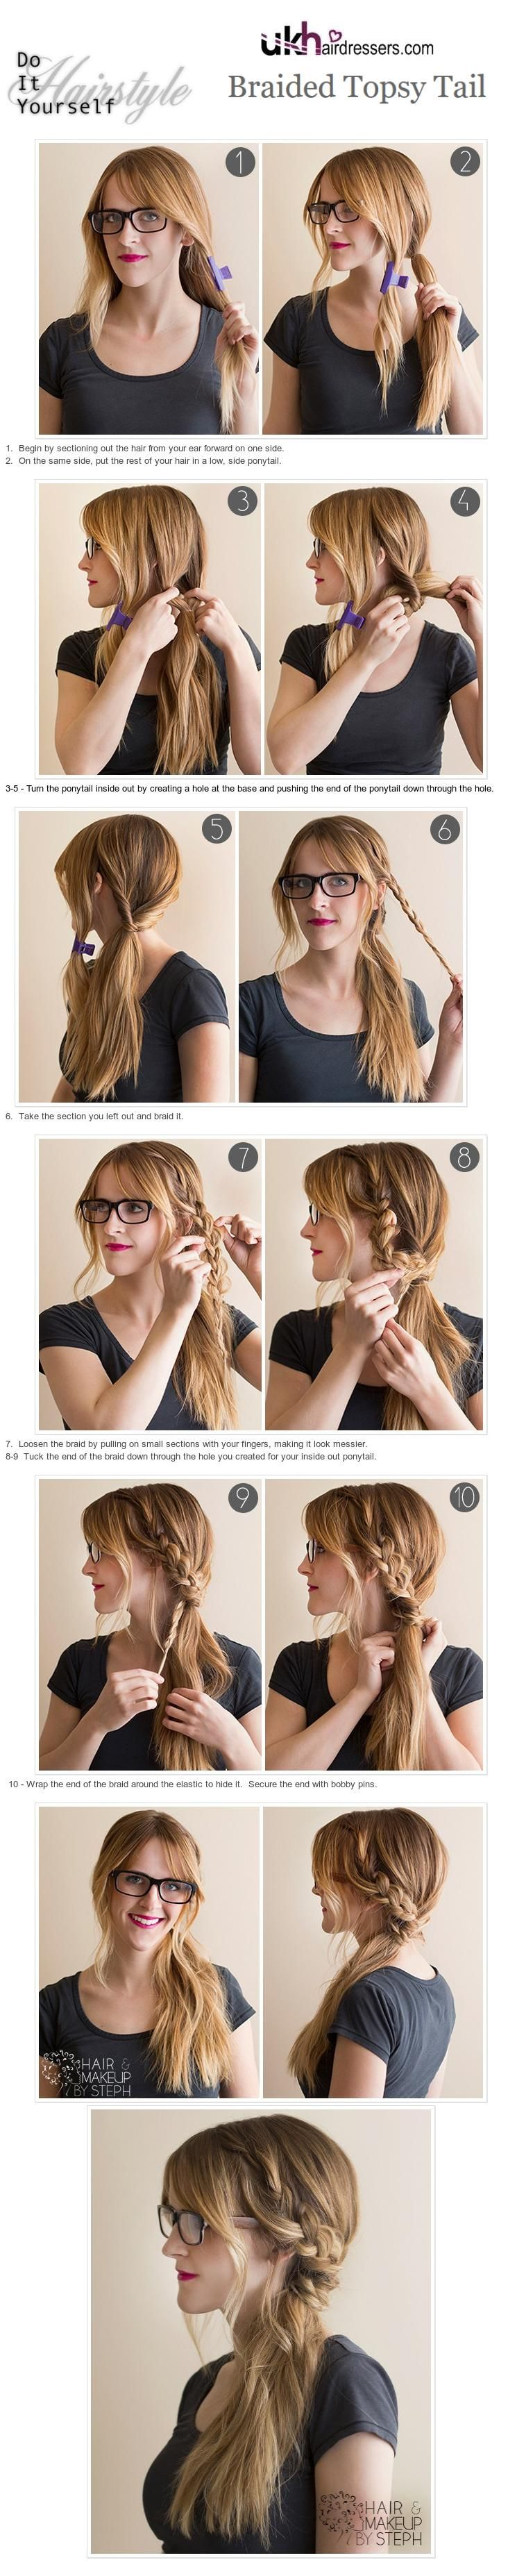 154 best DIY HAIRSTYLES images on Pinterest